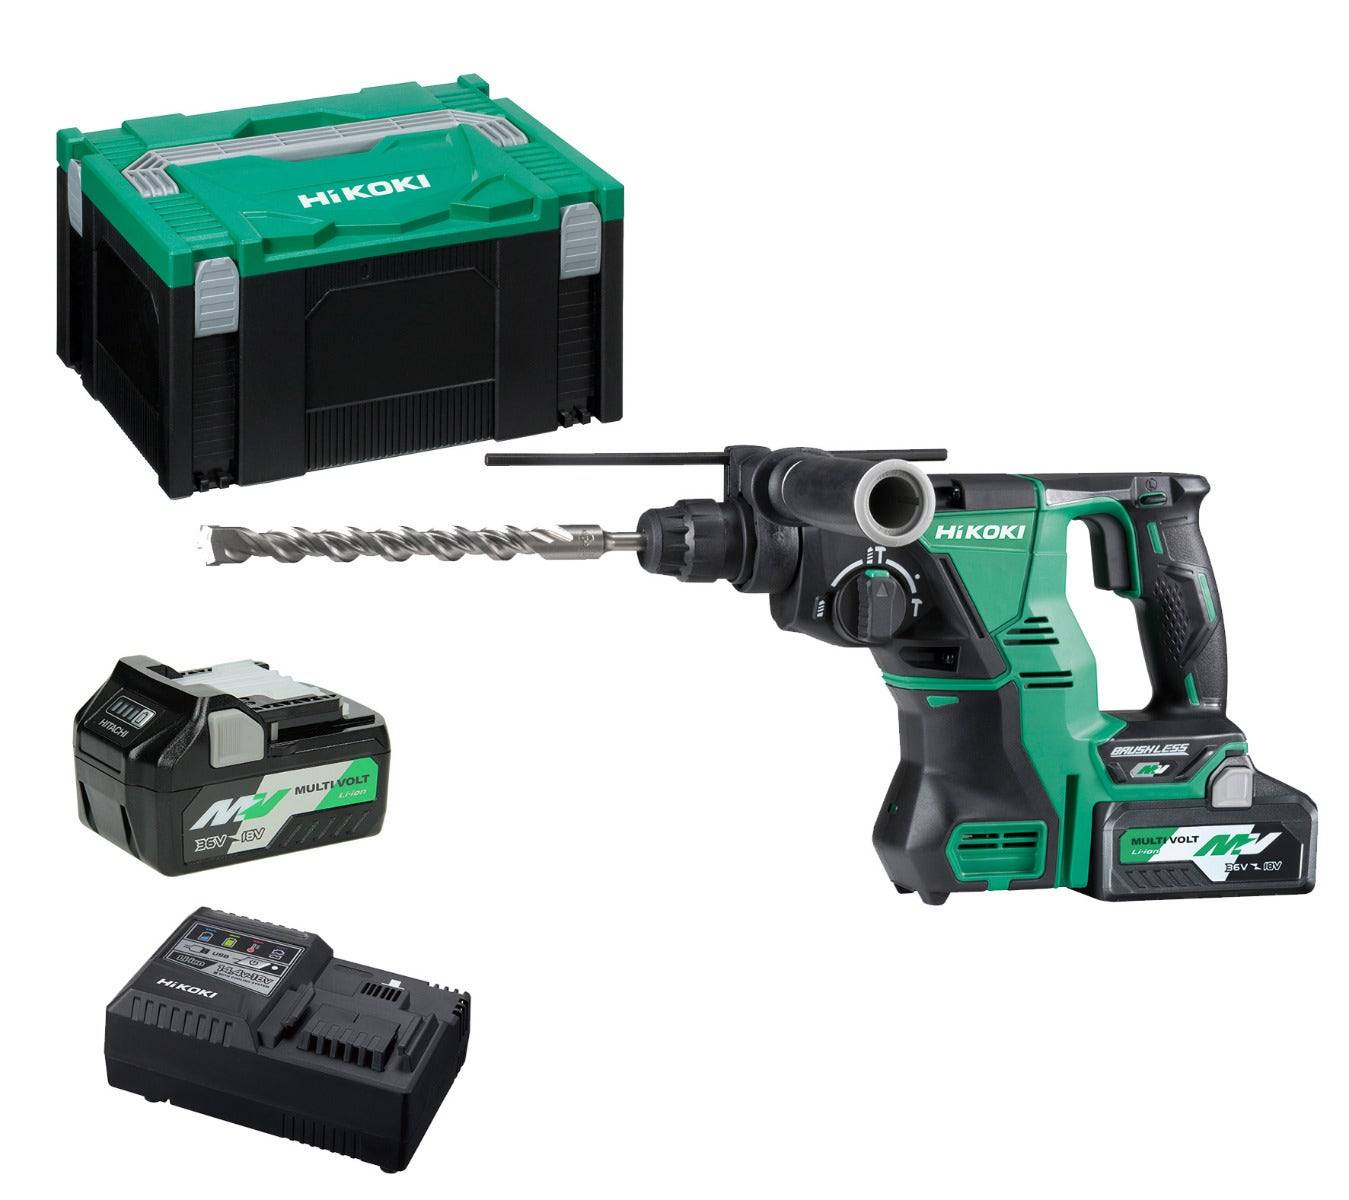 Hikoki Perforateur-burineur 28 mm Sds+ 36V + 2 batteries Li-Ion 4Ah + chargeur multi-Volt